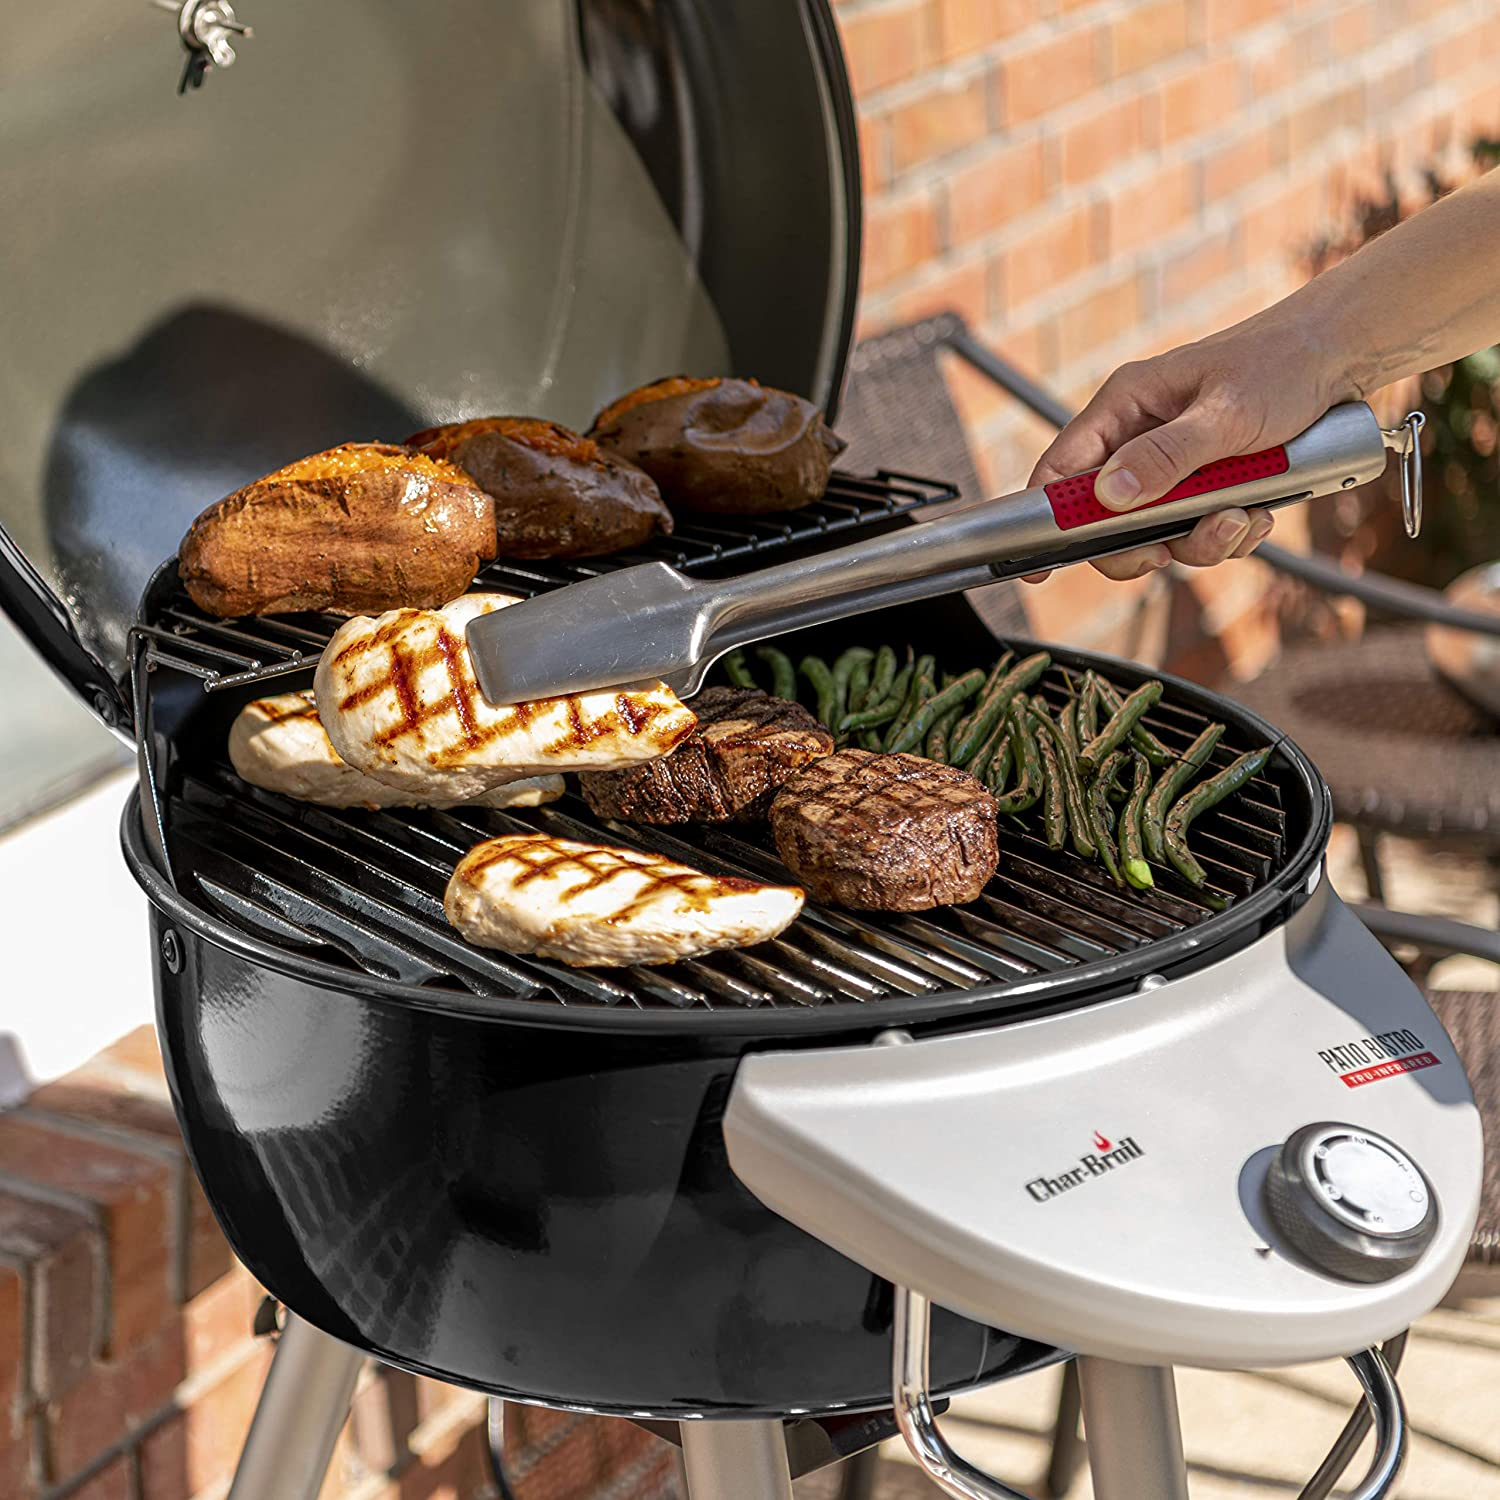 Char-Broil Patio Bistro TRU-Infrared Electric Grill in use